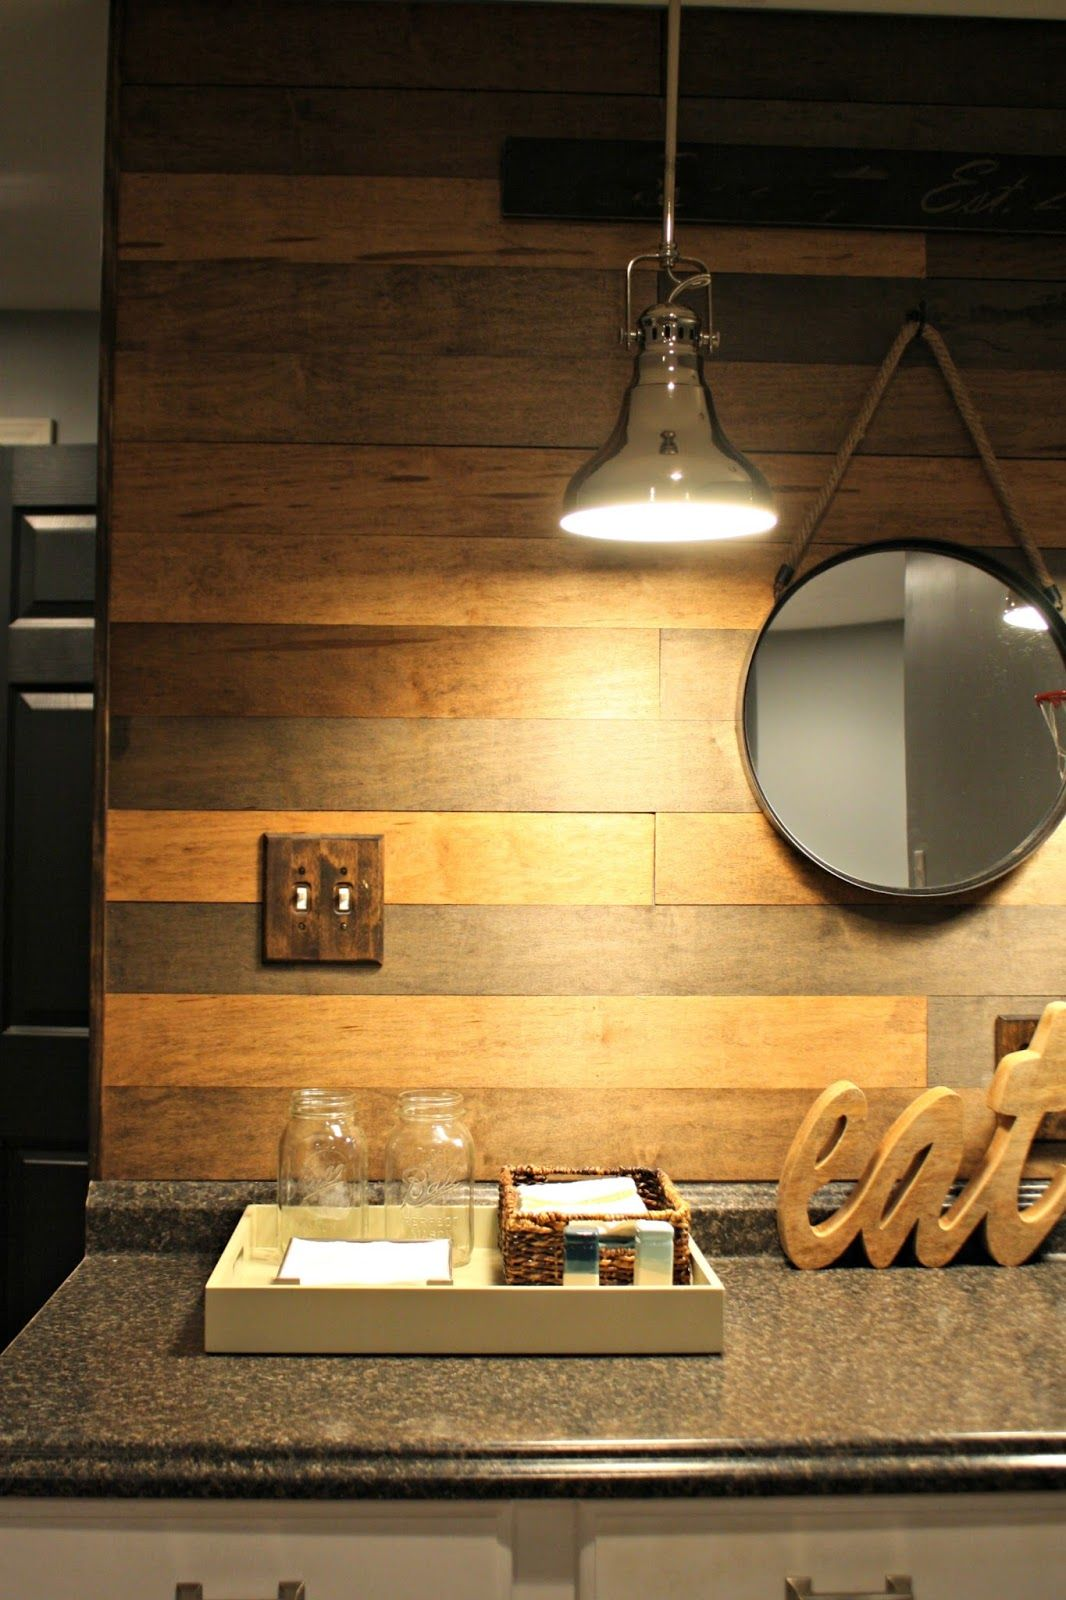 My New Favorite Wood Planked Wall | Wood plank walls, Planked walls ...